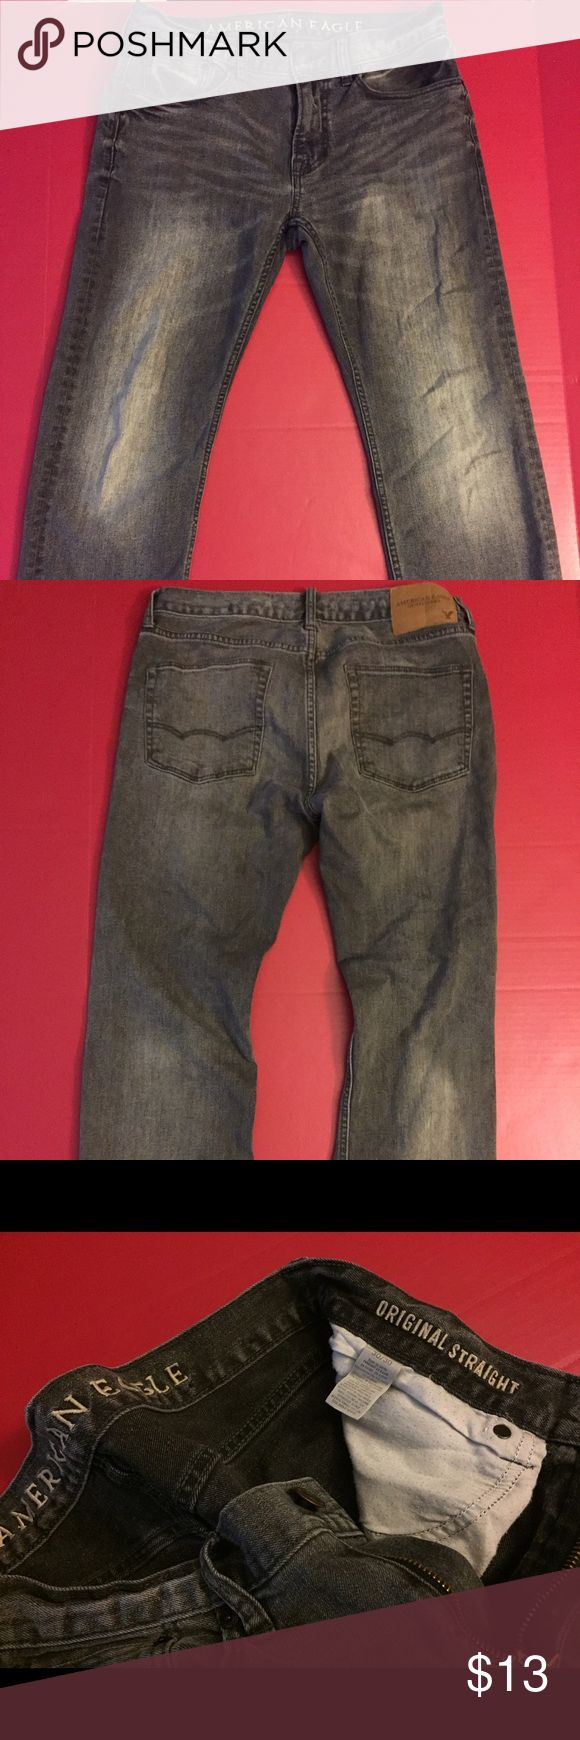 American Eagle Gray Jeans American Eagle Men's Gray Jeans 30X30. Straight. Have some elasticity to them. American Eagle Outfitters Jeans Straight